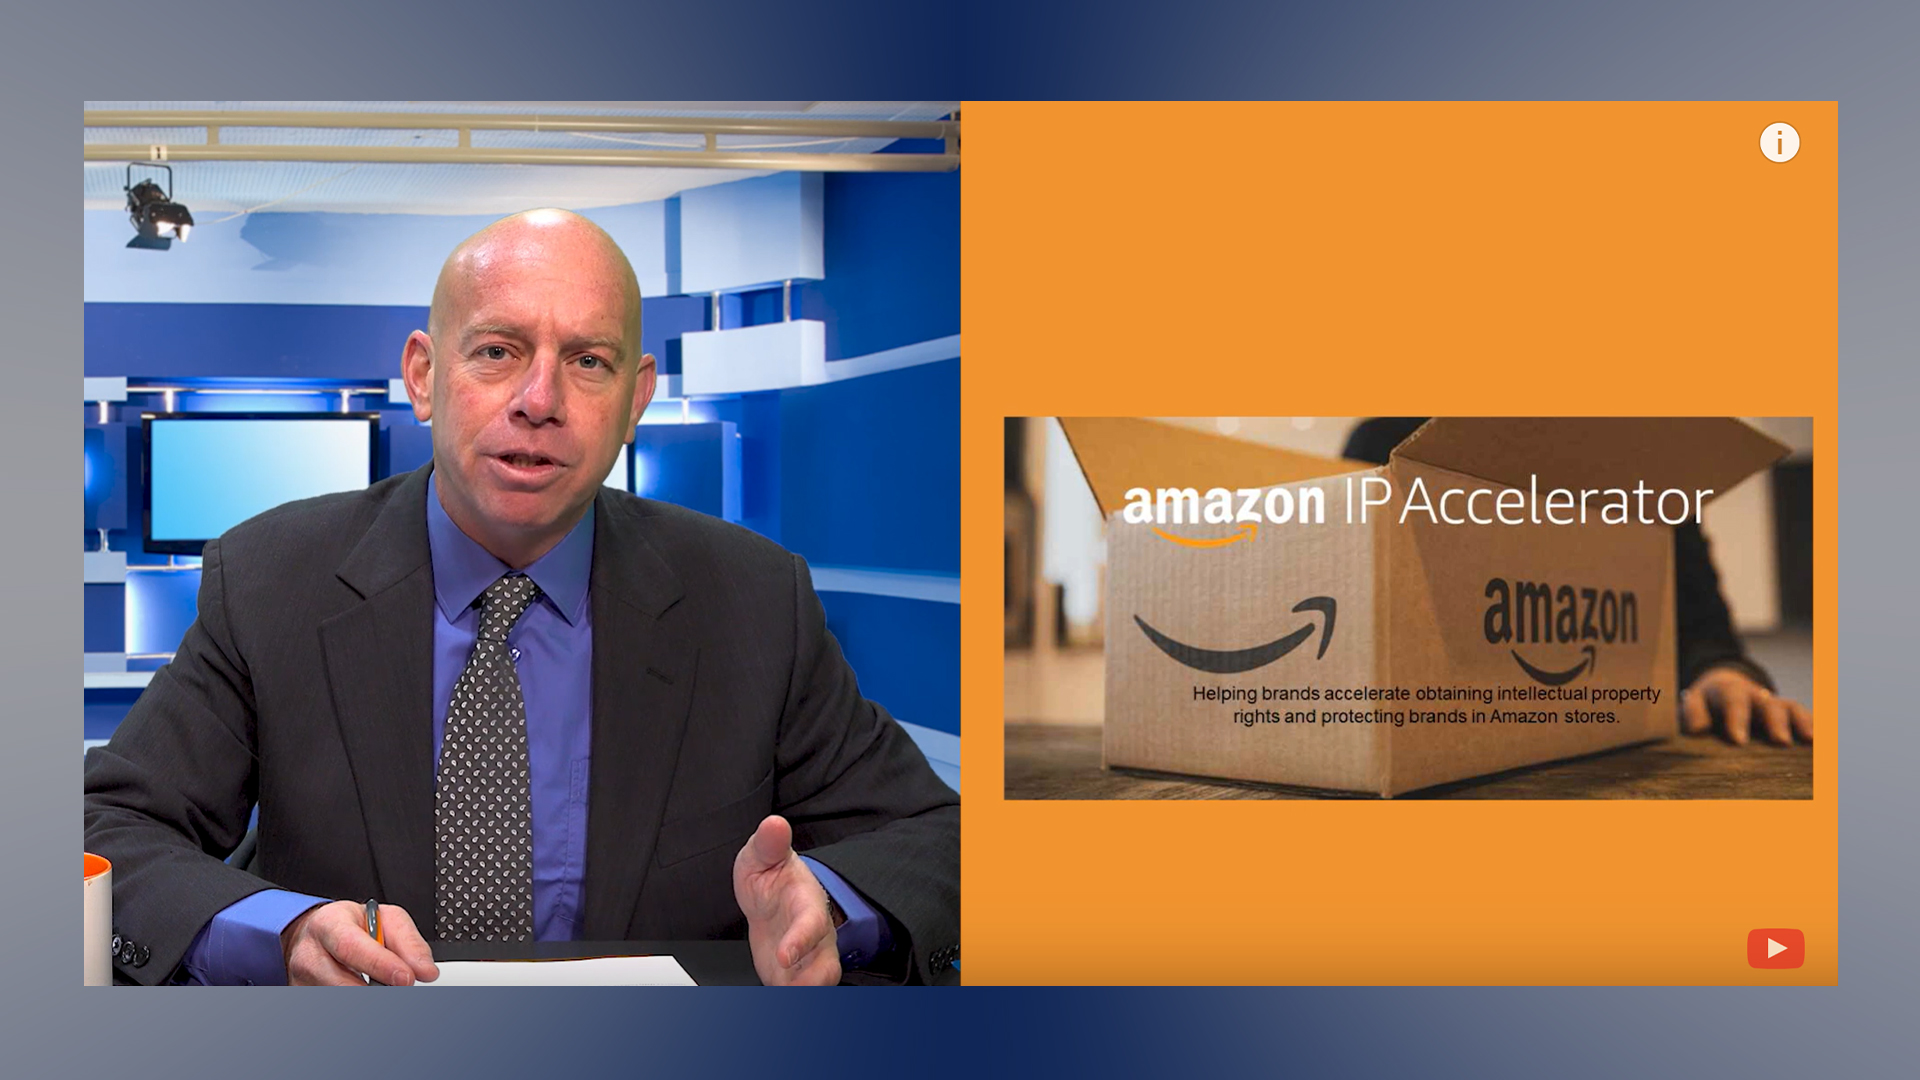 Amazon Related Account Issues, Trademark Complaints From Disney & Business Verification Information